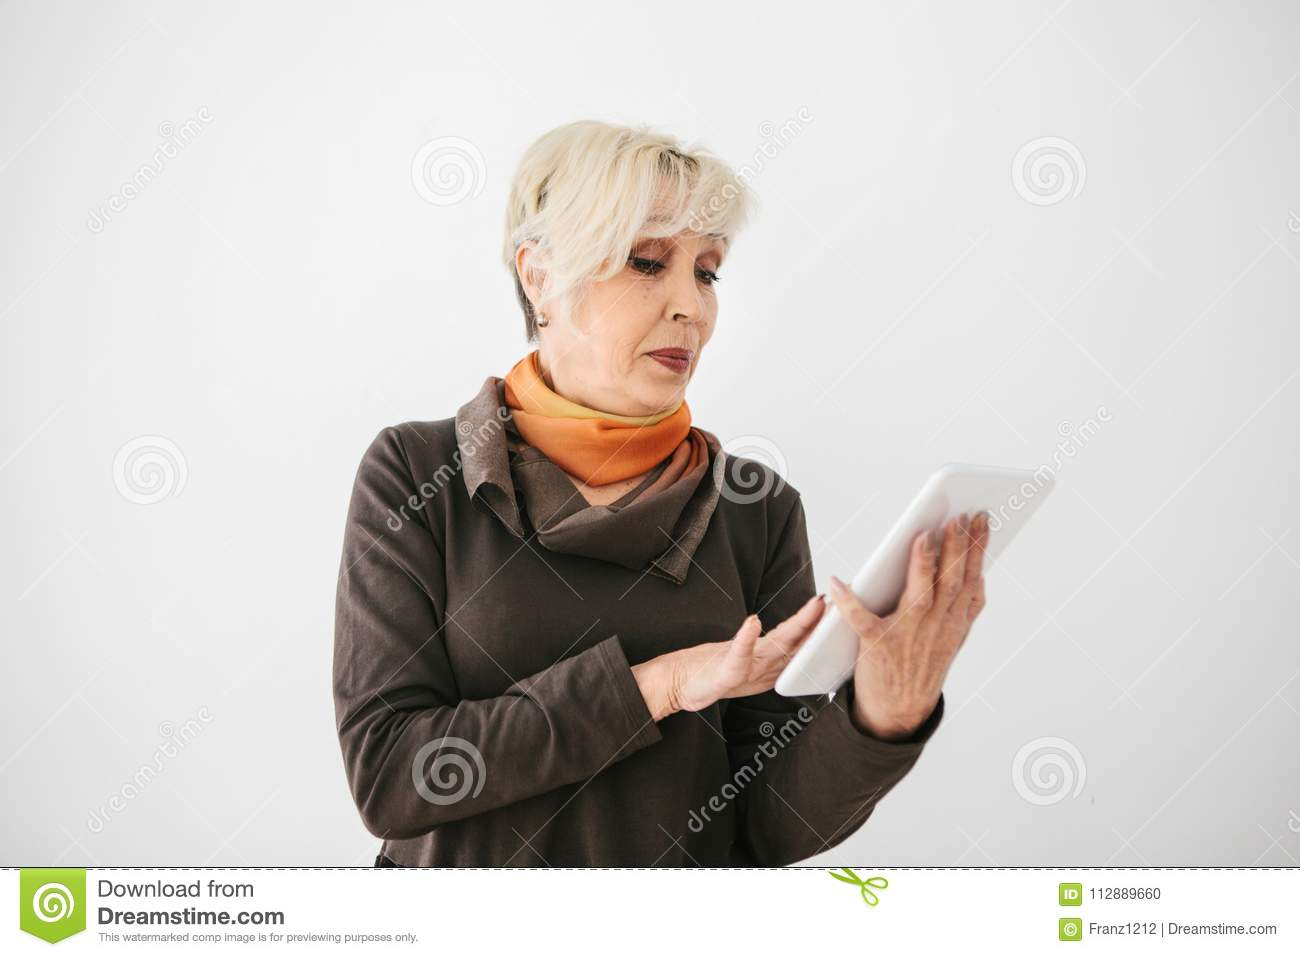 A positive modern elderly woman holds a tablet in her hands and uses it. The older generation and modern technology.